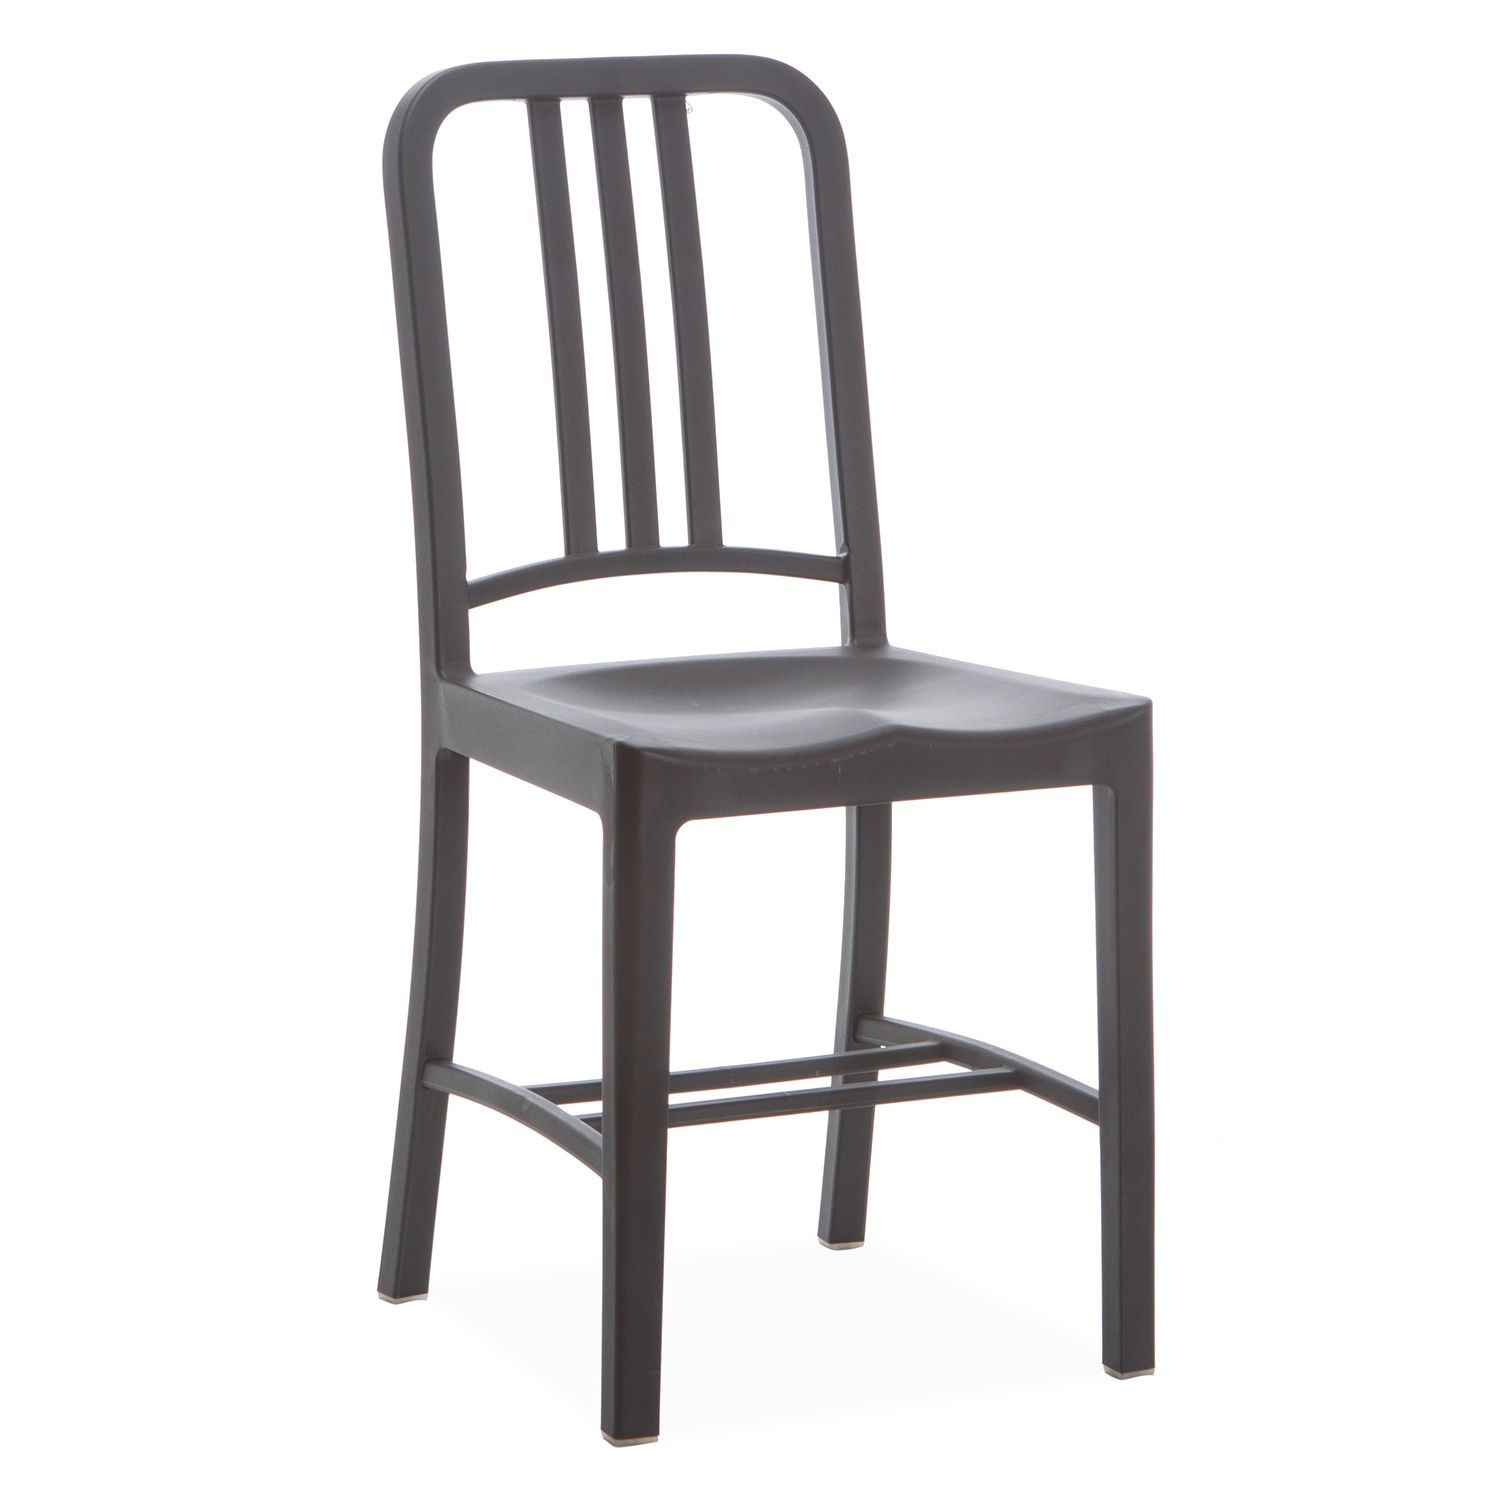 Chair NOIA, Polypropylene Black *